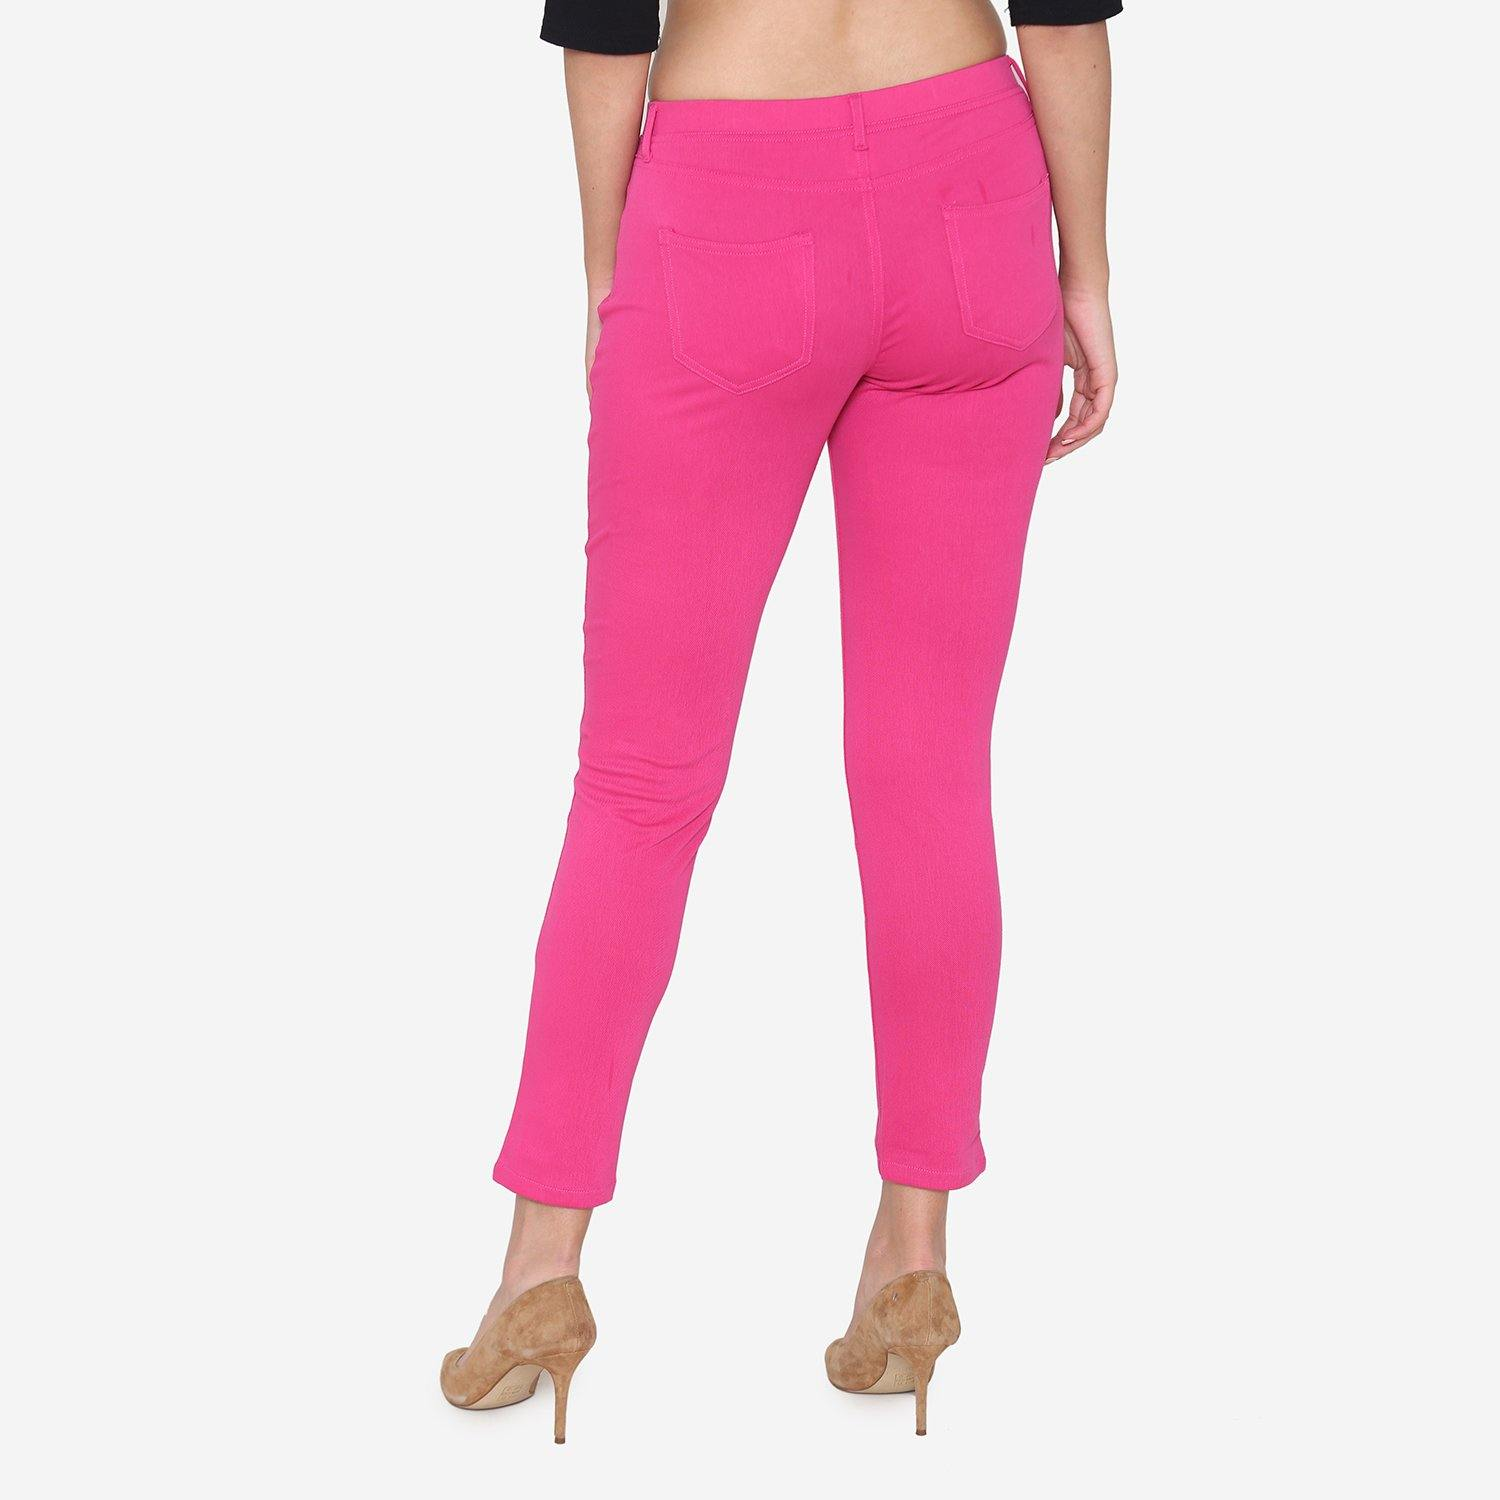 Vami Women's  Cotton Stretchable Jeggings - Magic Pink